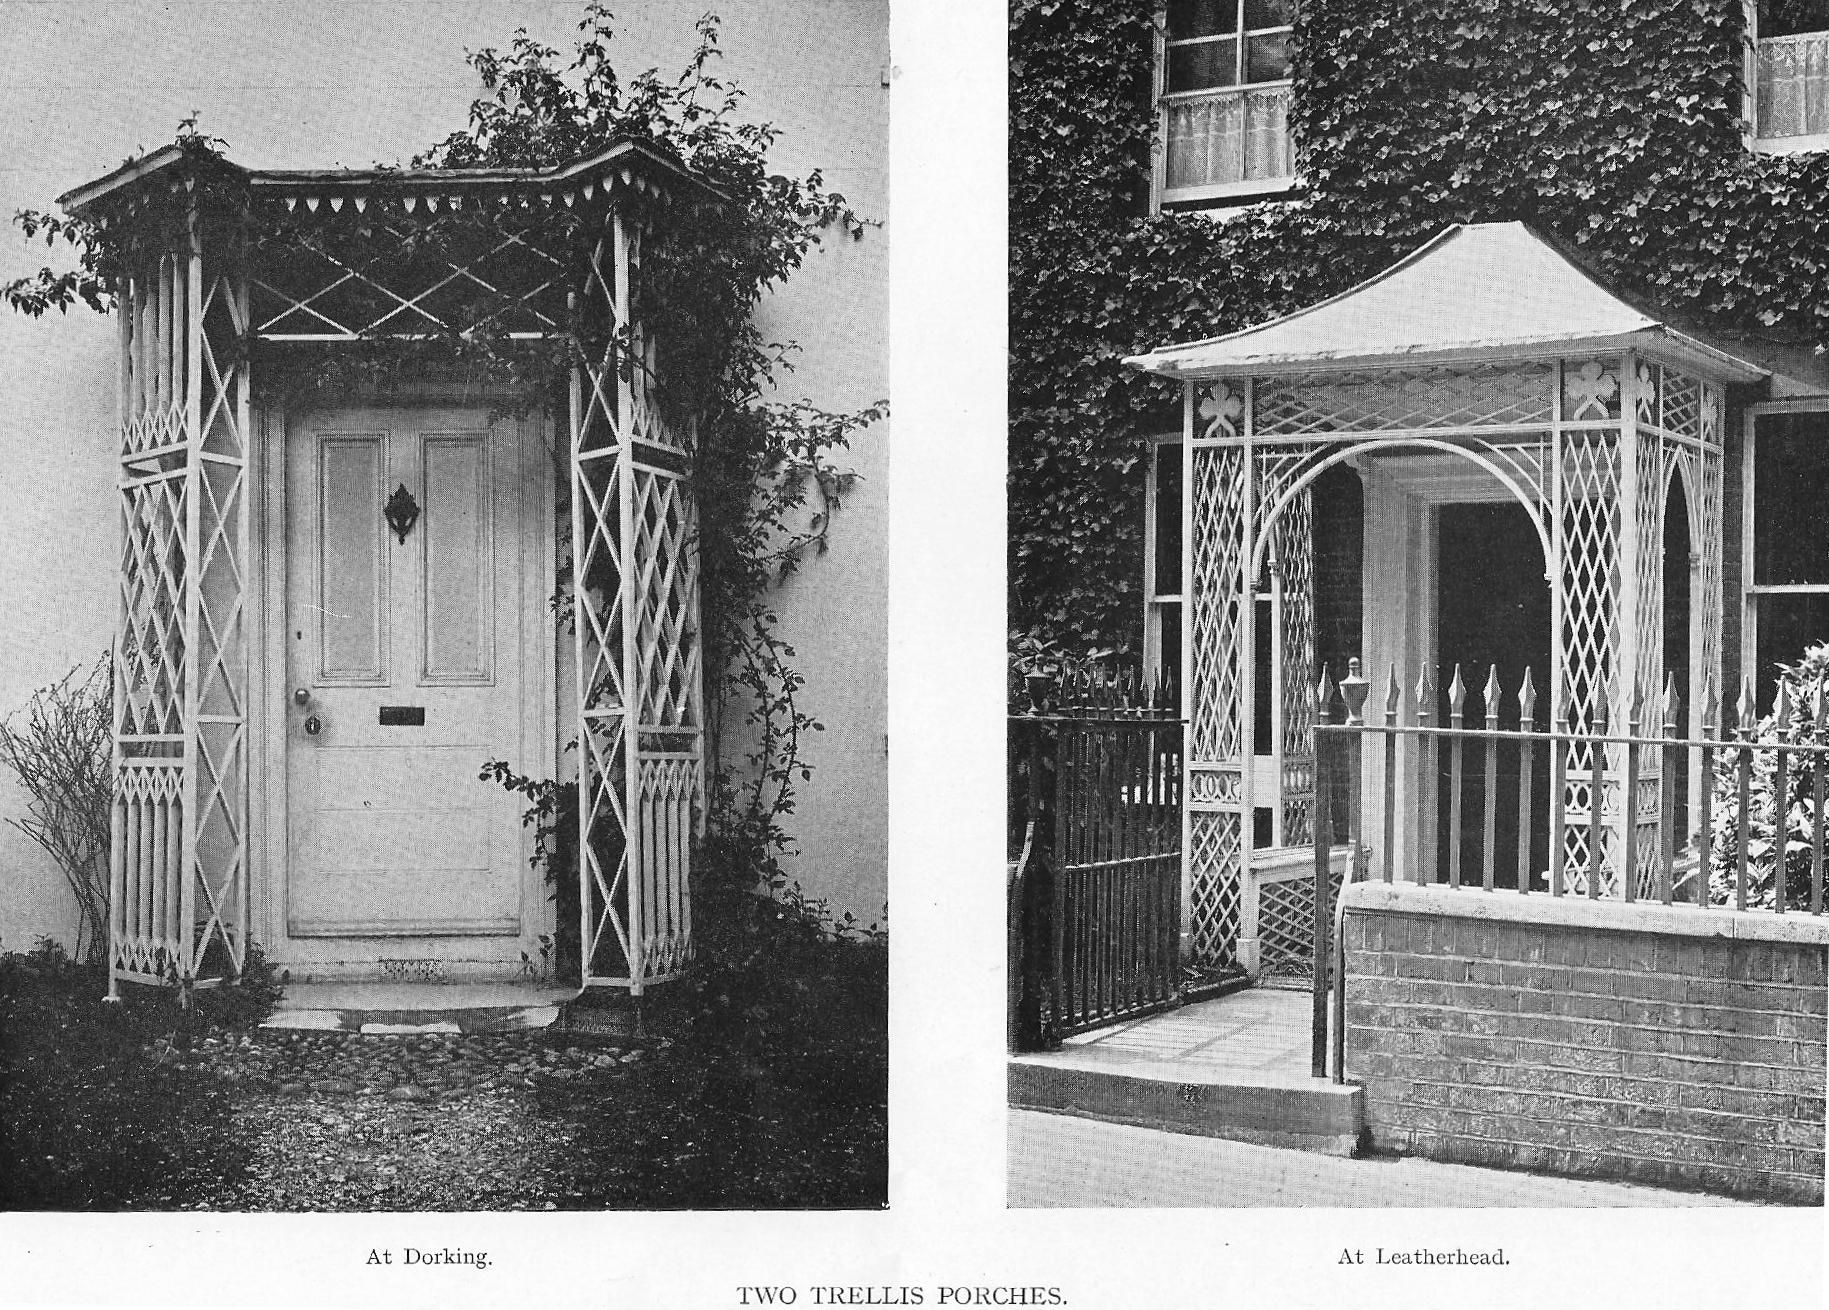 Gartenarchitekt England Late Georgian Porches England Architecture The British Isles